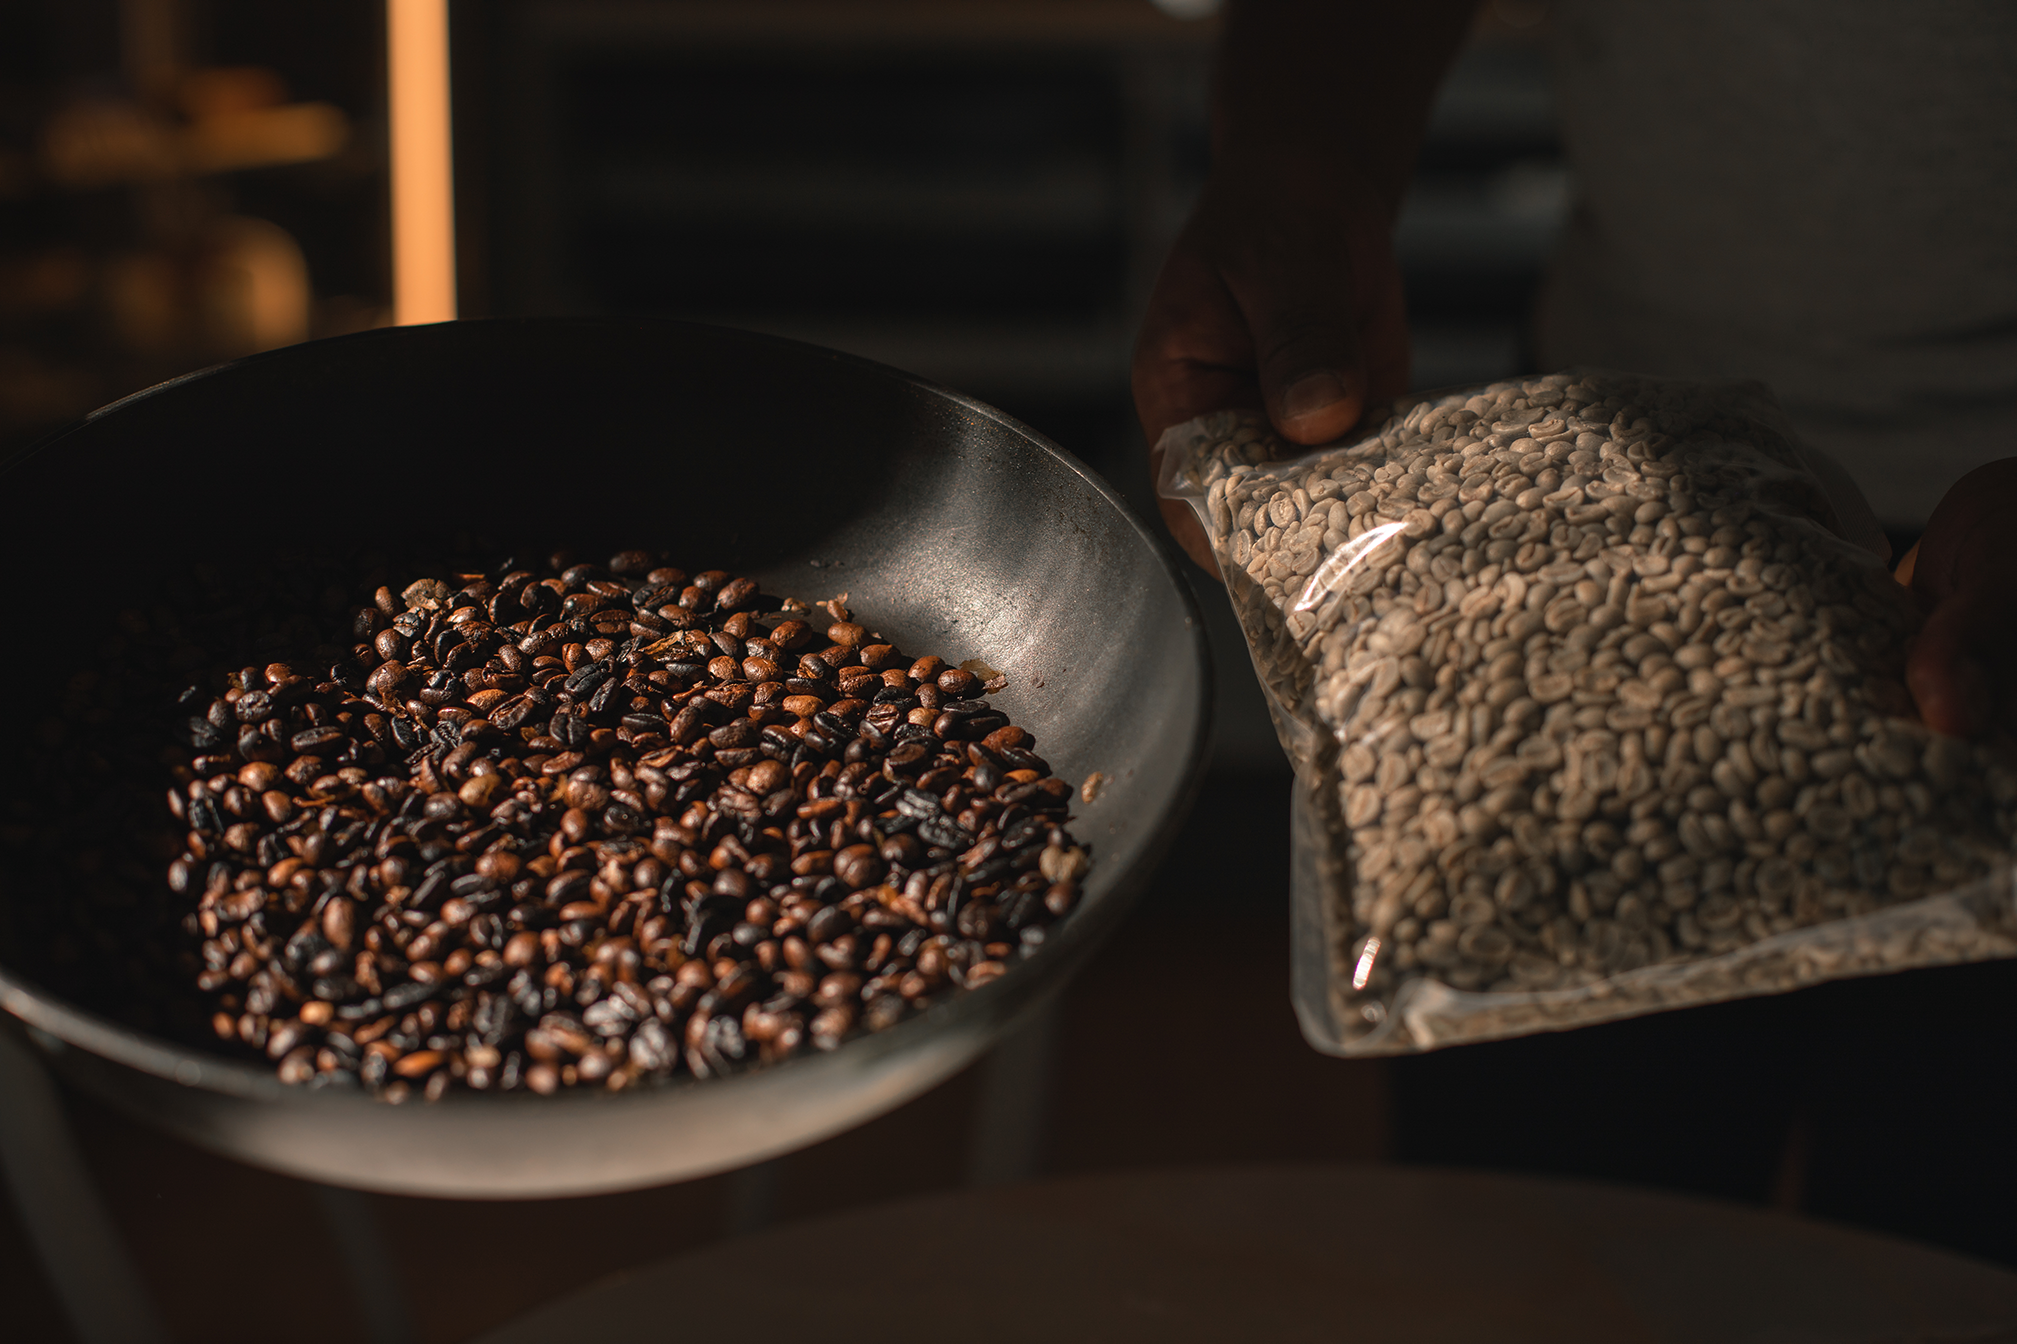 Eritrean Coffee beans being roasted.